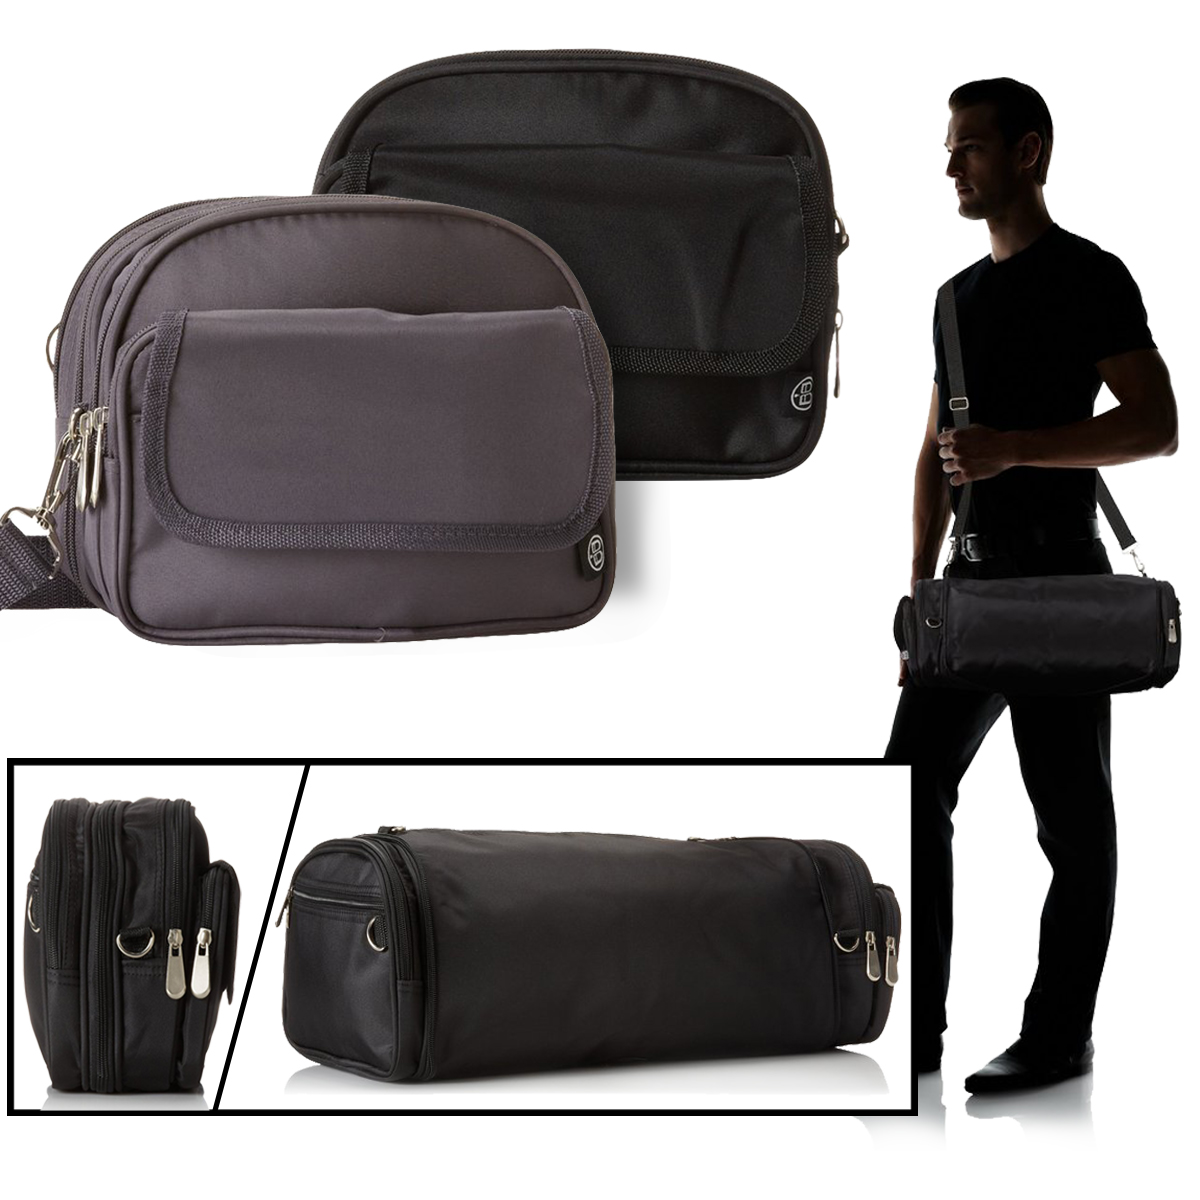 2 Beyond A Bag Expandable Totes 3-In-1 Crossbody Shoulder Waist Duffle Pack Case by